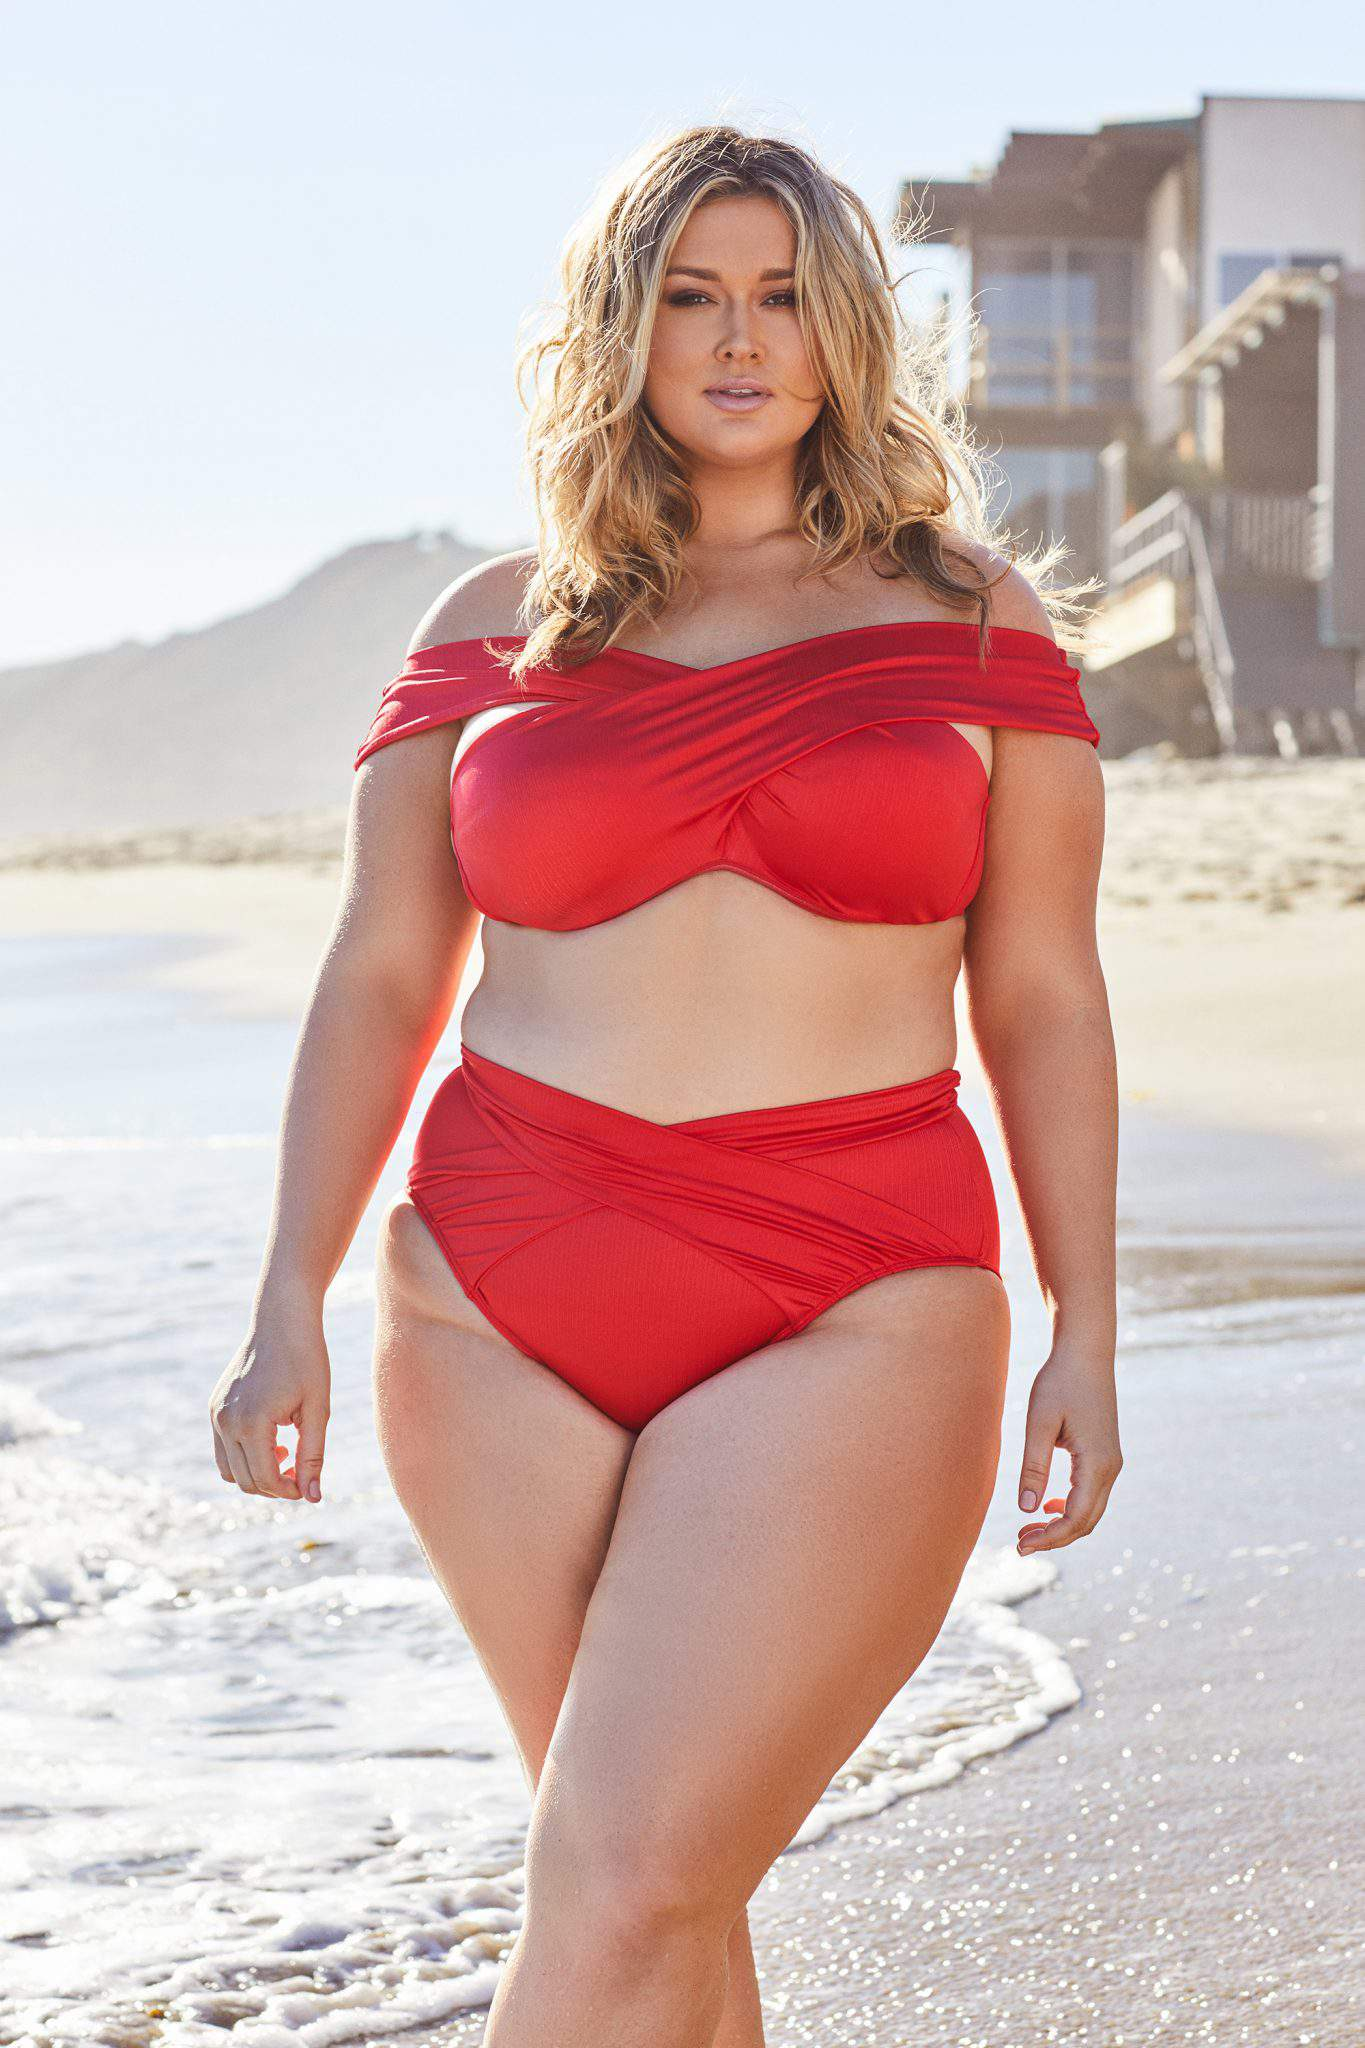 Hunter McGrady x Playful Promises Swim Campaign